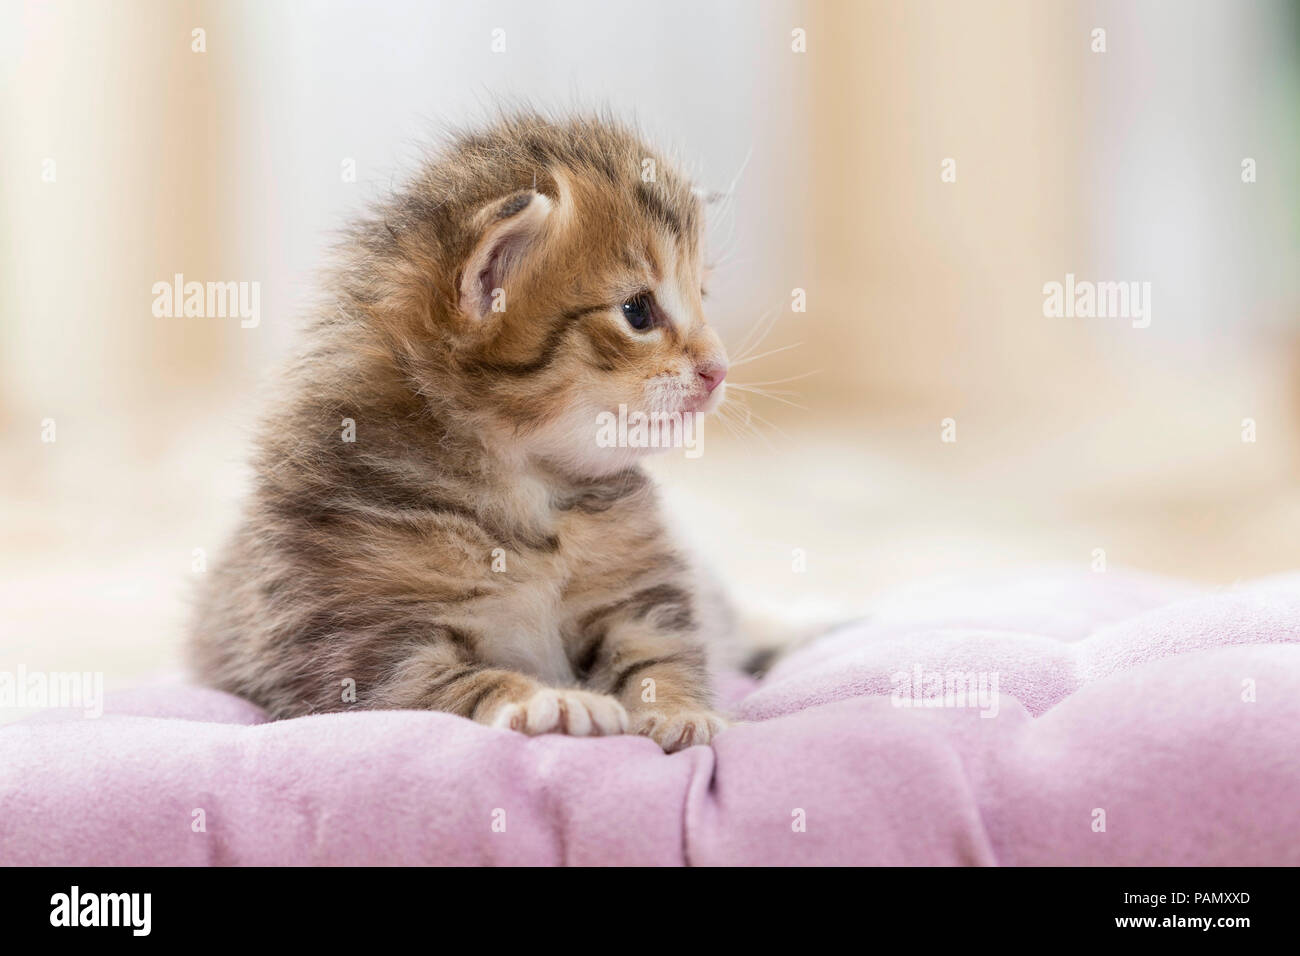 Norwegian Forest Cat. Tabby kitten (5 weeks old) on a blanket. Germany, - Stock Image